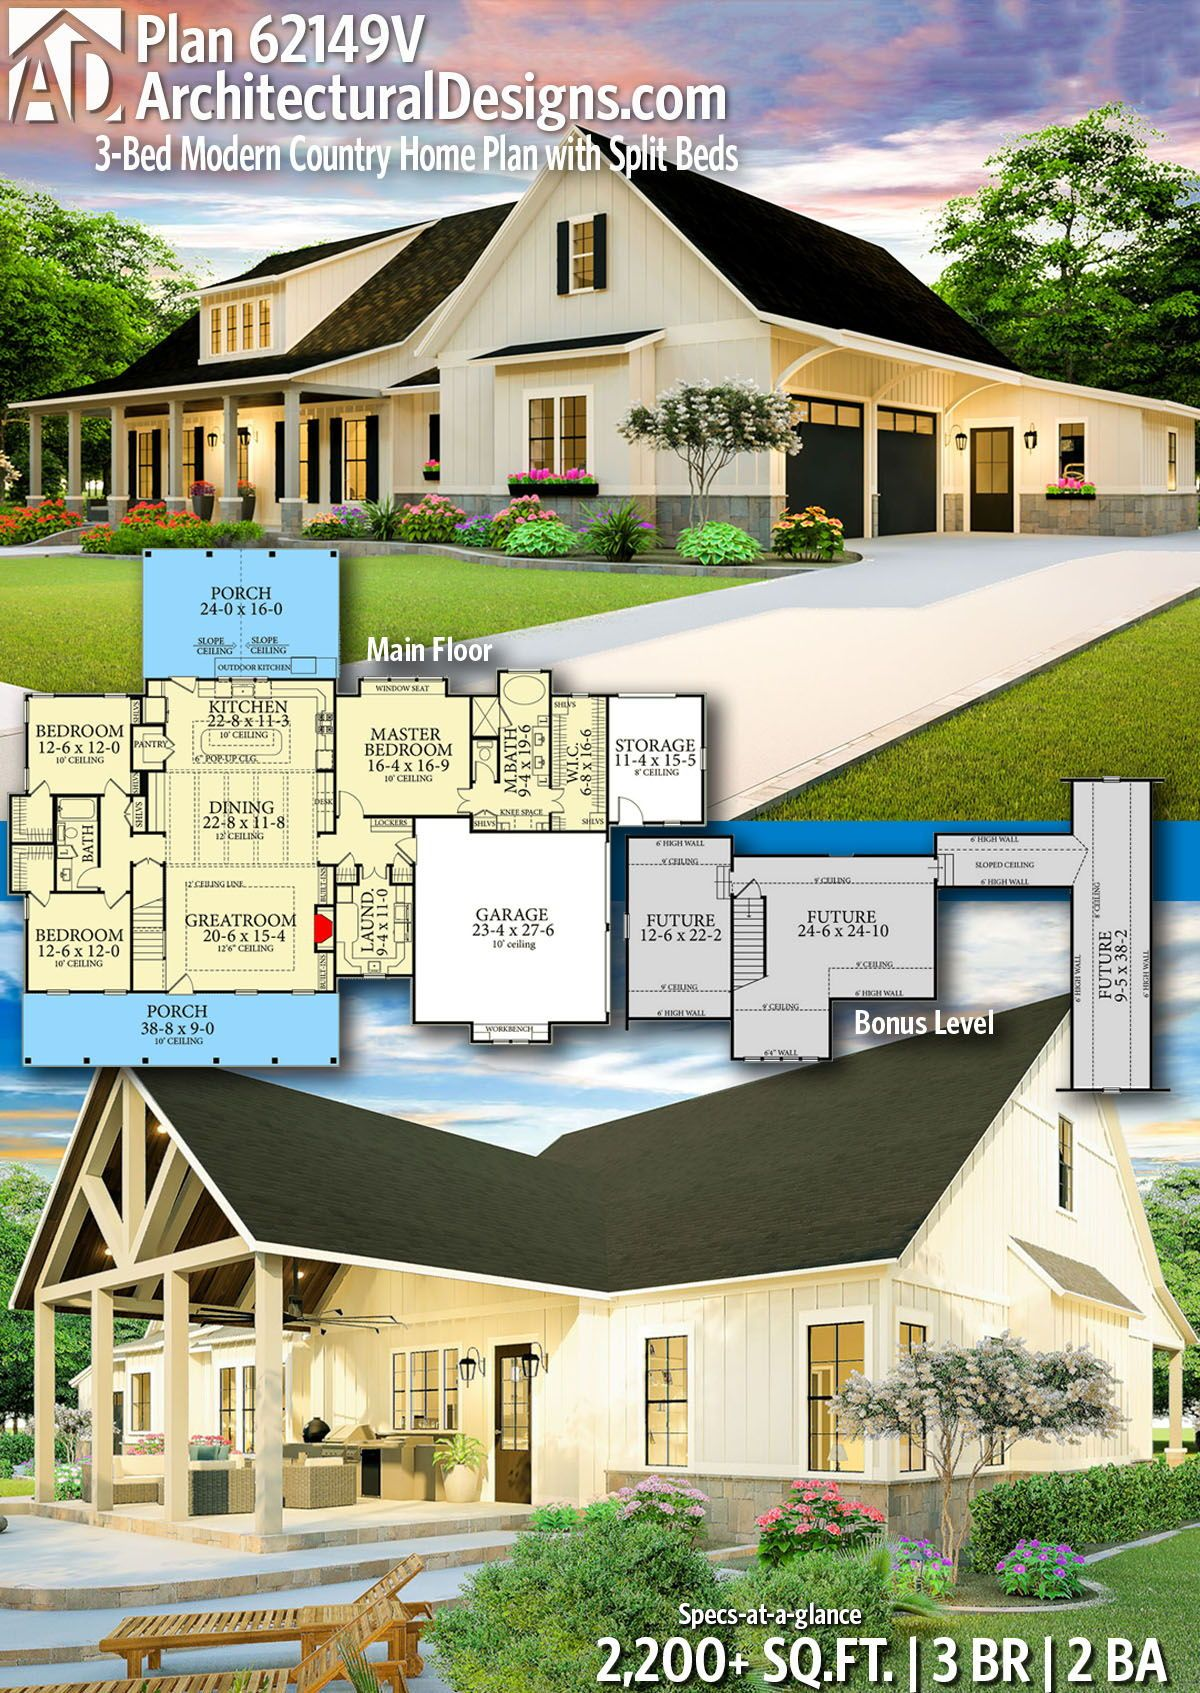 Plan 62149v 3 Bed Modern Country Home Plan With Split Beds House Plans Farmhouse Country House Plans Dream House Plans